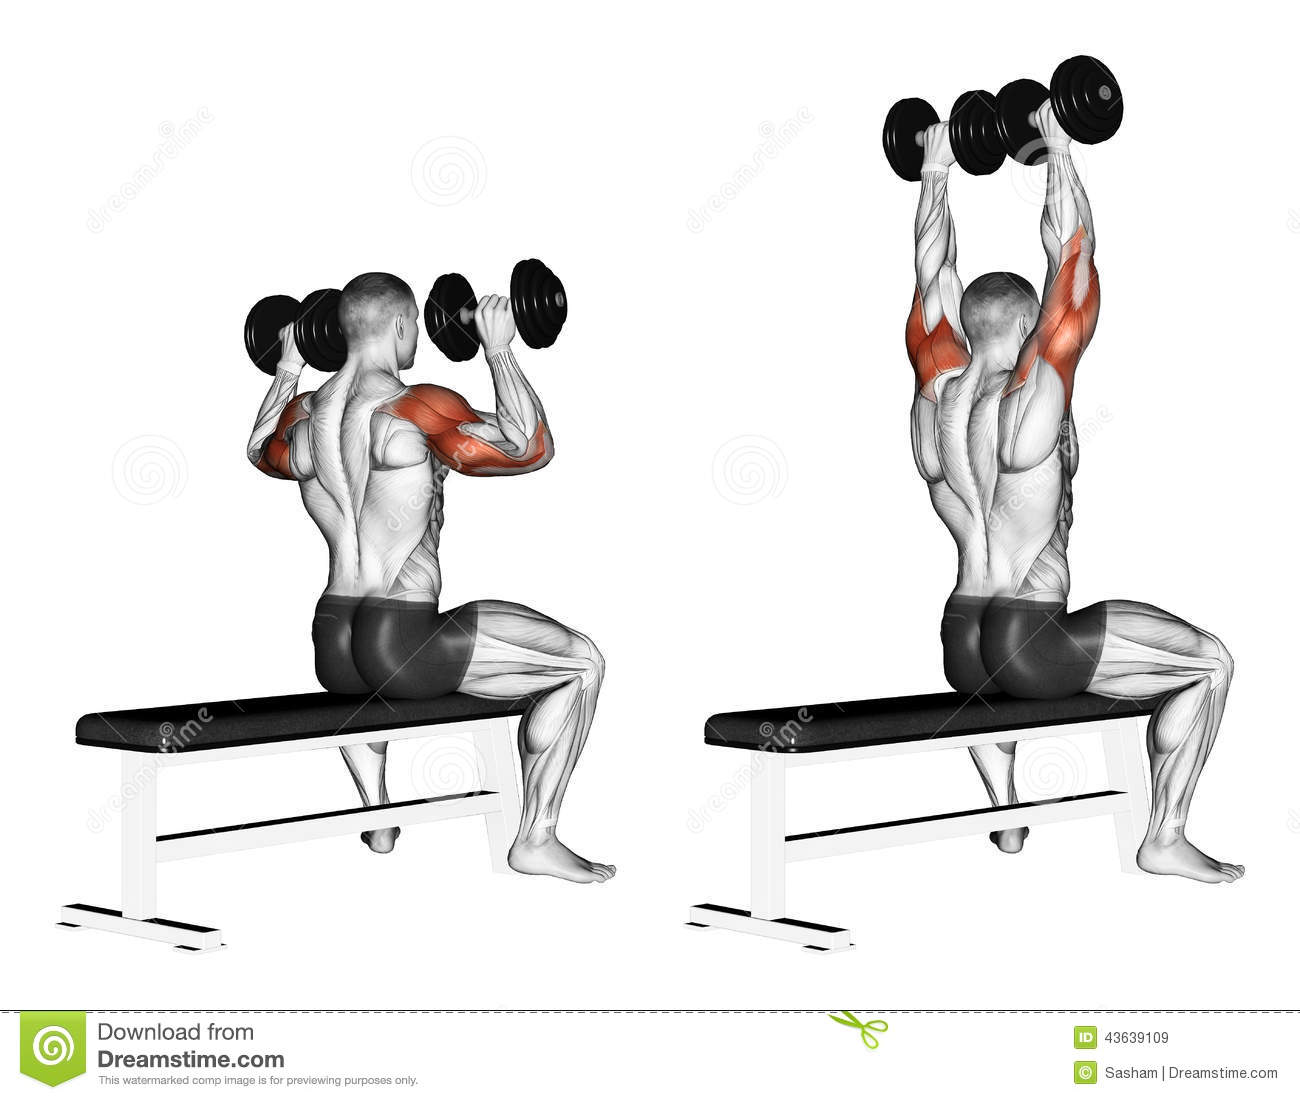 Exercising. Bench dumbbell sitting